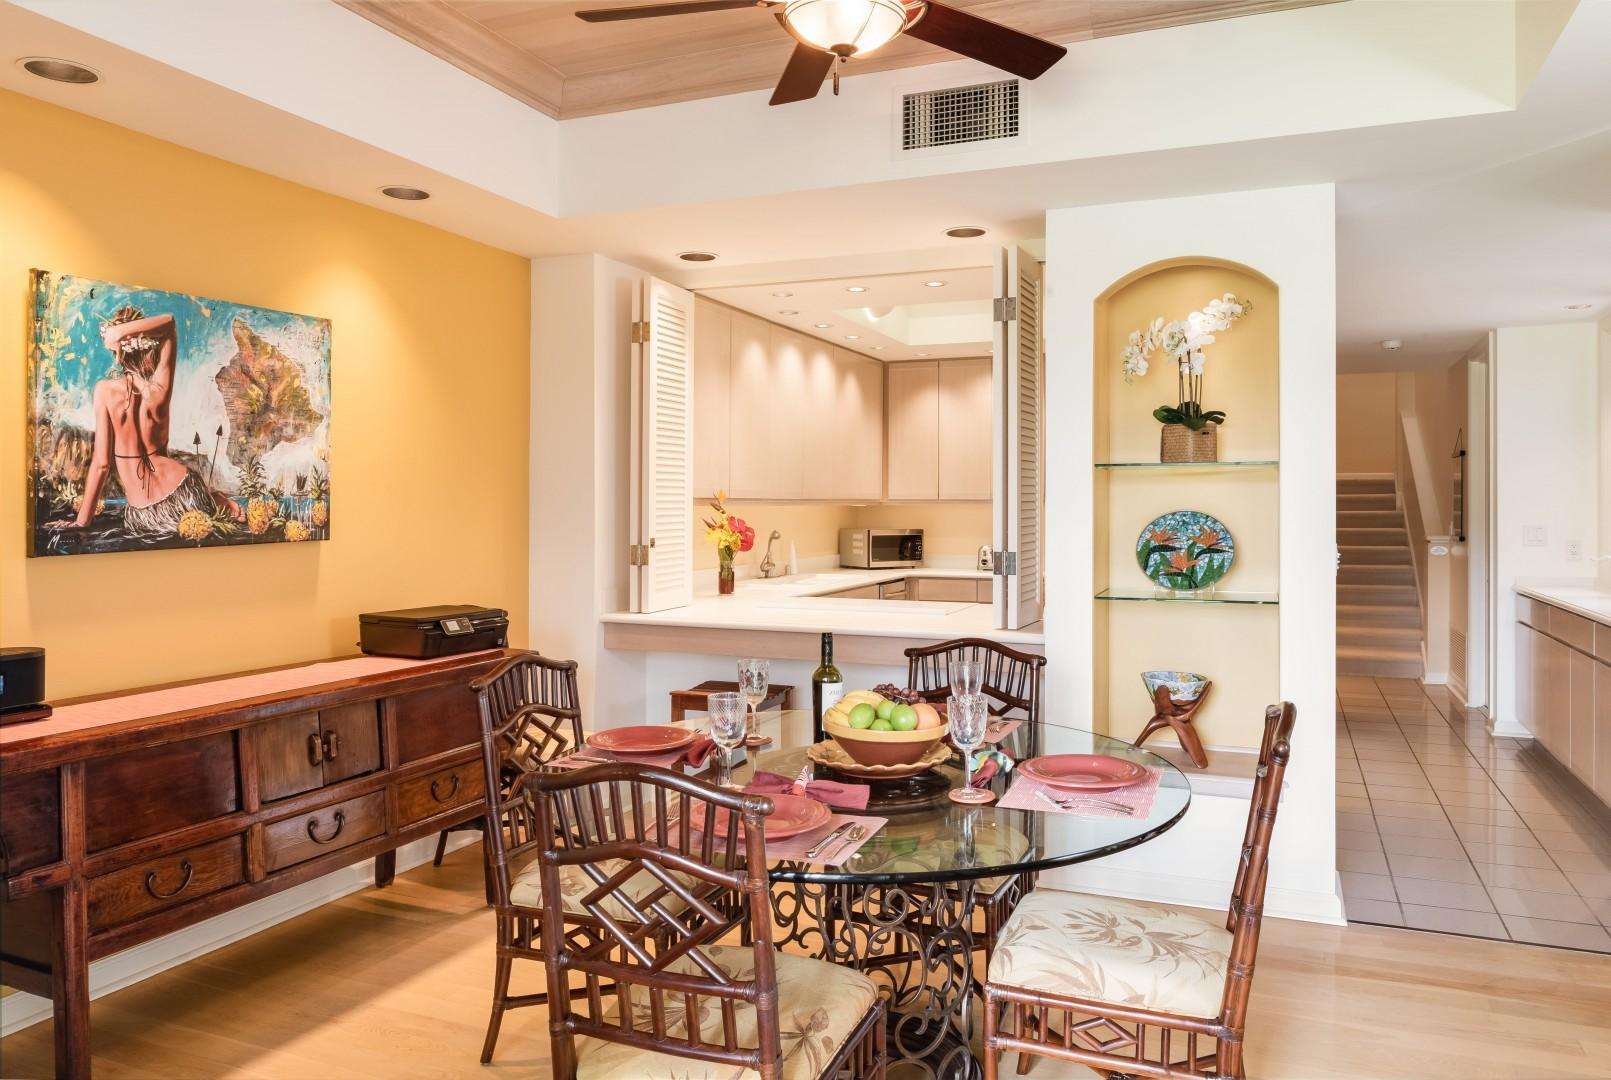 Dining Room w/ Additional Seating for Six Opens Into Kitchen via Breakfast Bar